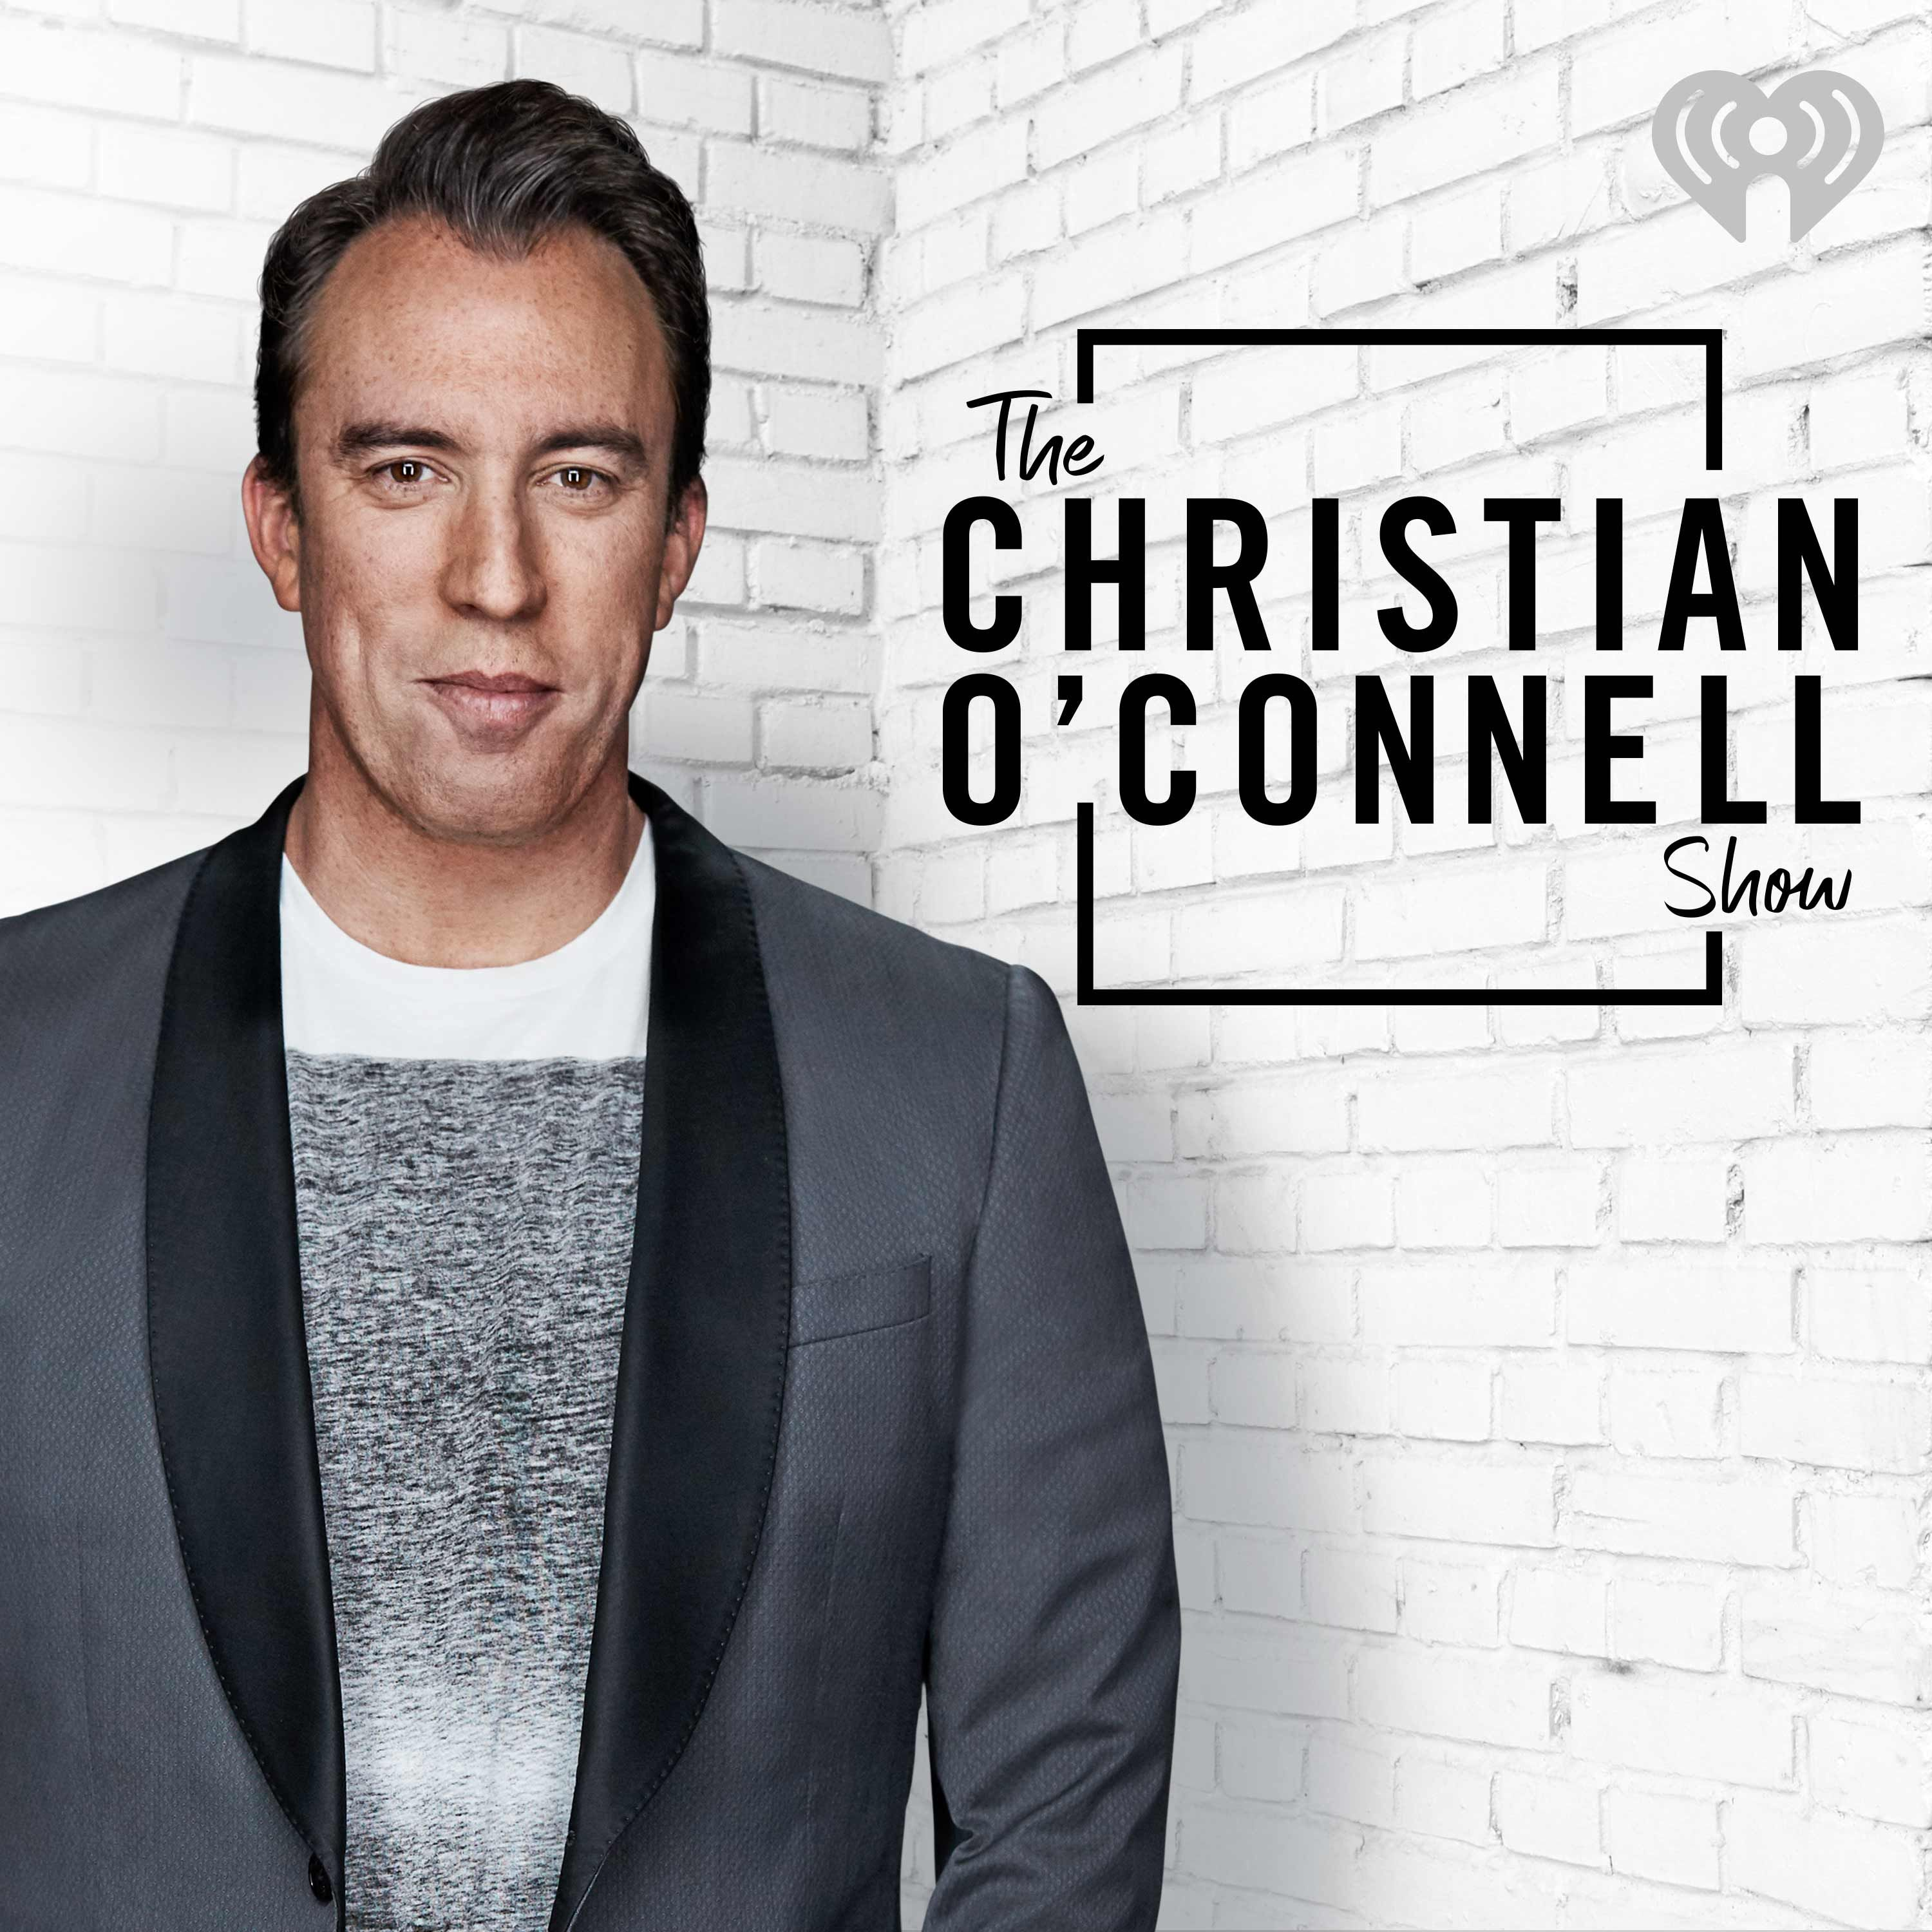 The Christian O'Connell Show